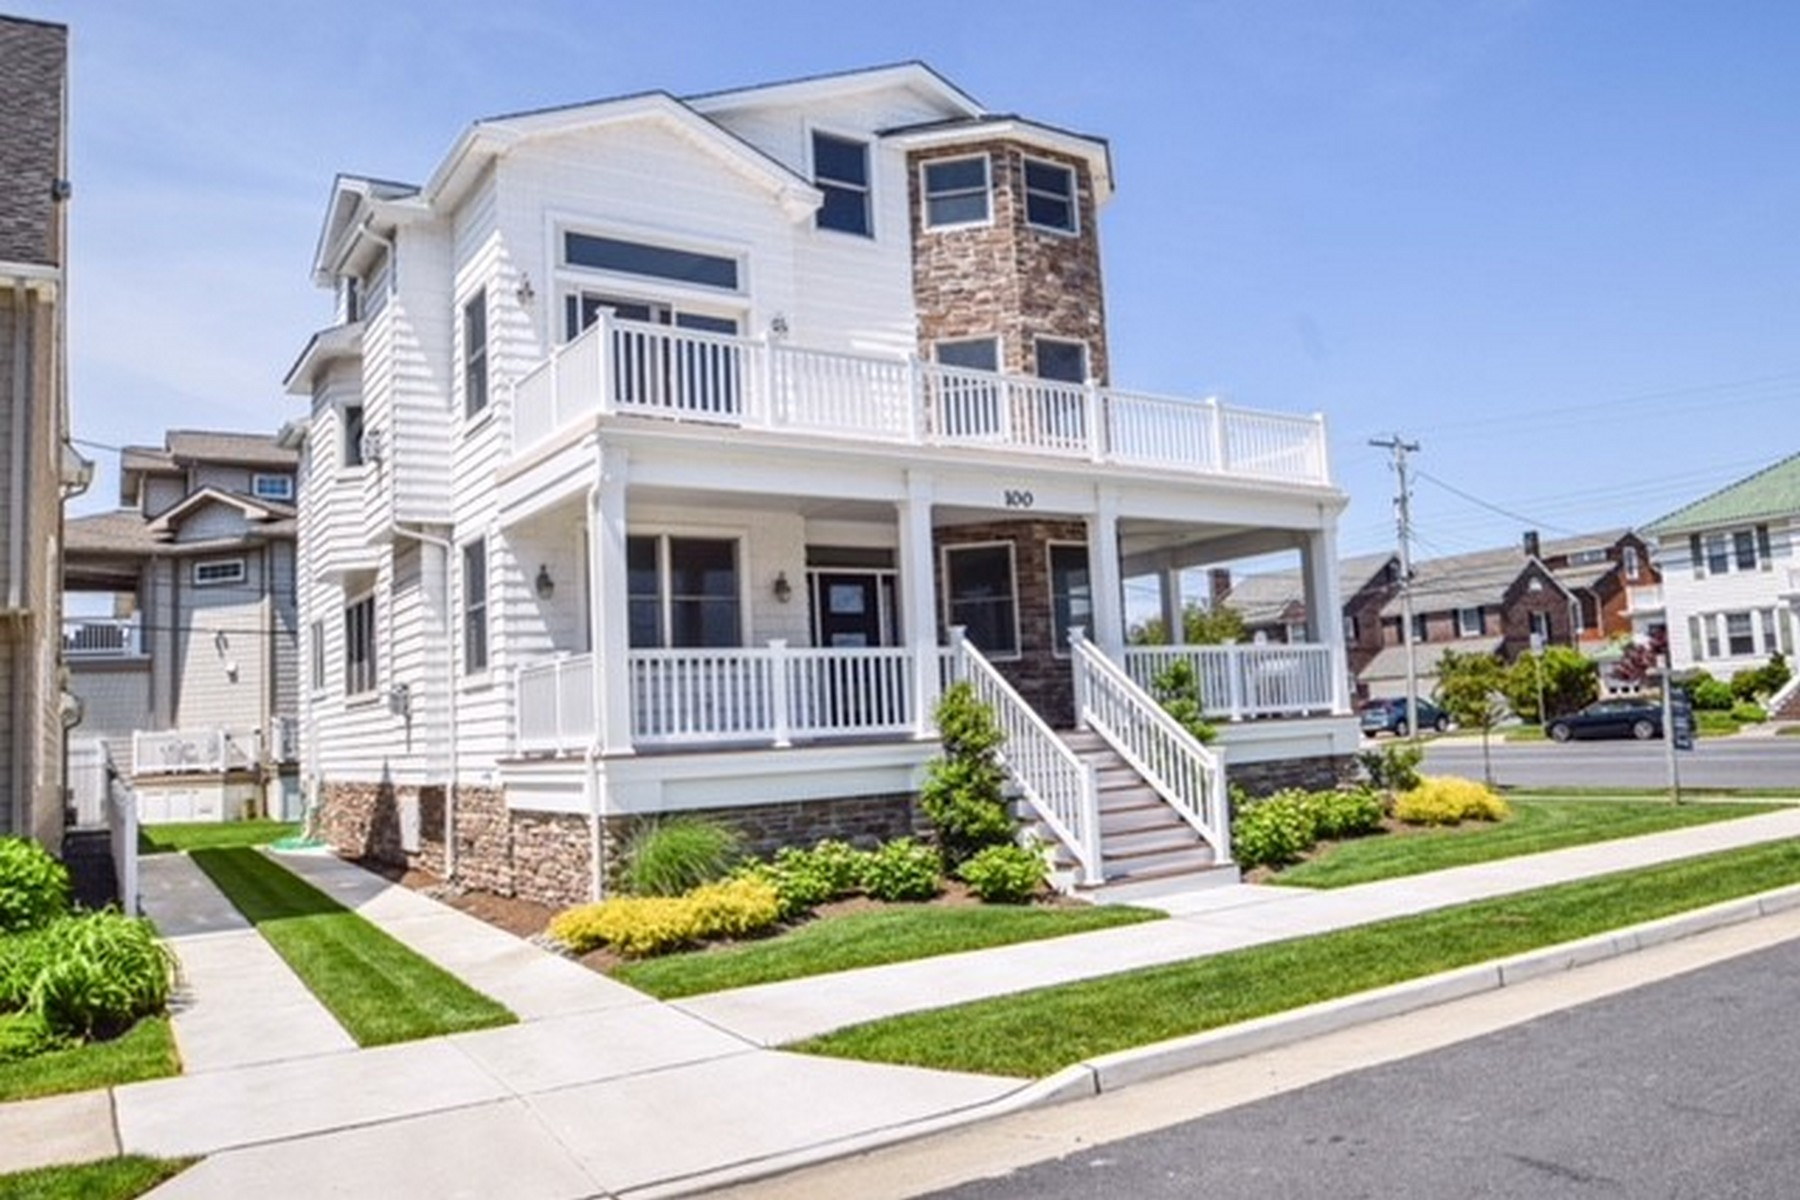 Single Family Home for Sale at 100 S Pembroke Ave Margate, New Jersey 08402 United States